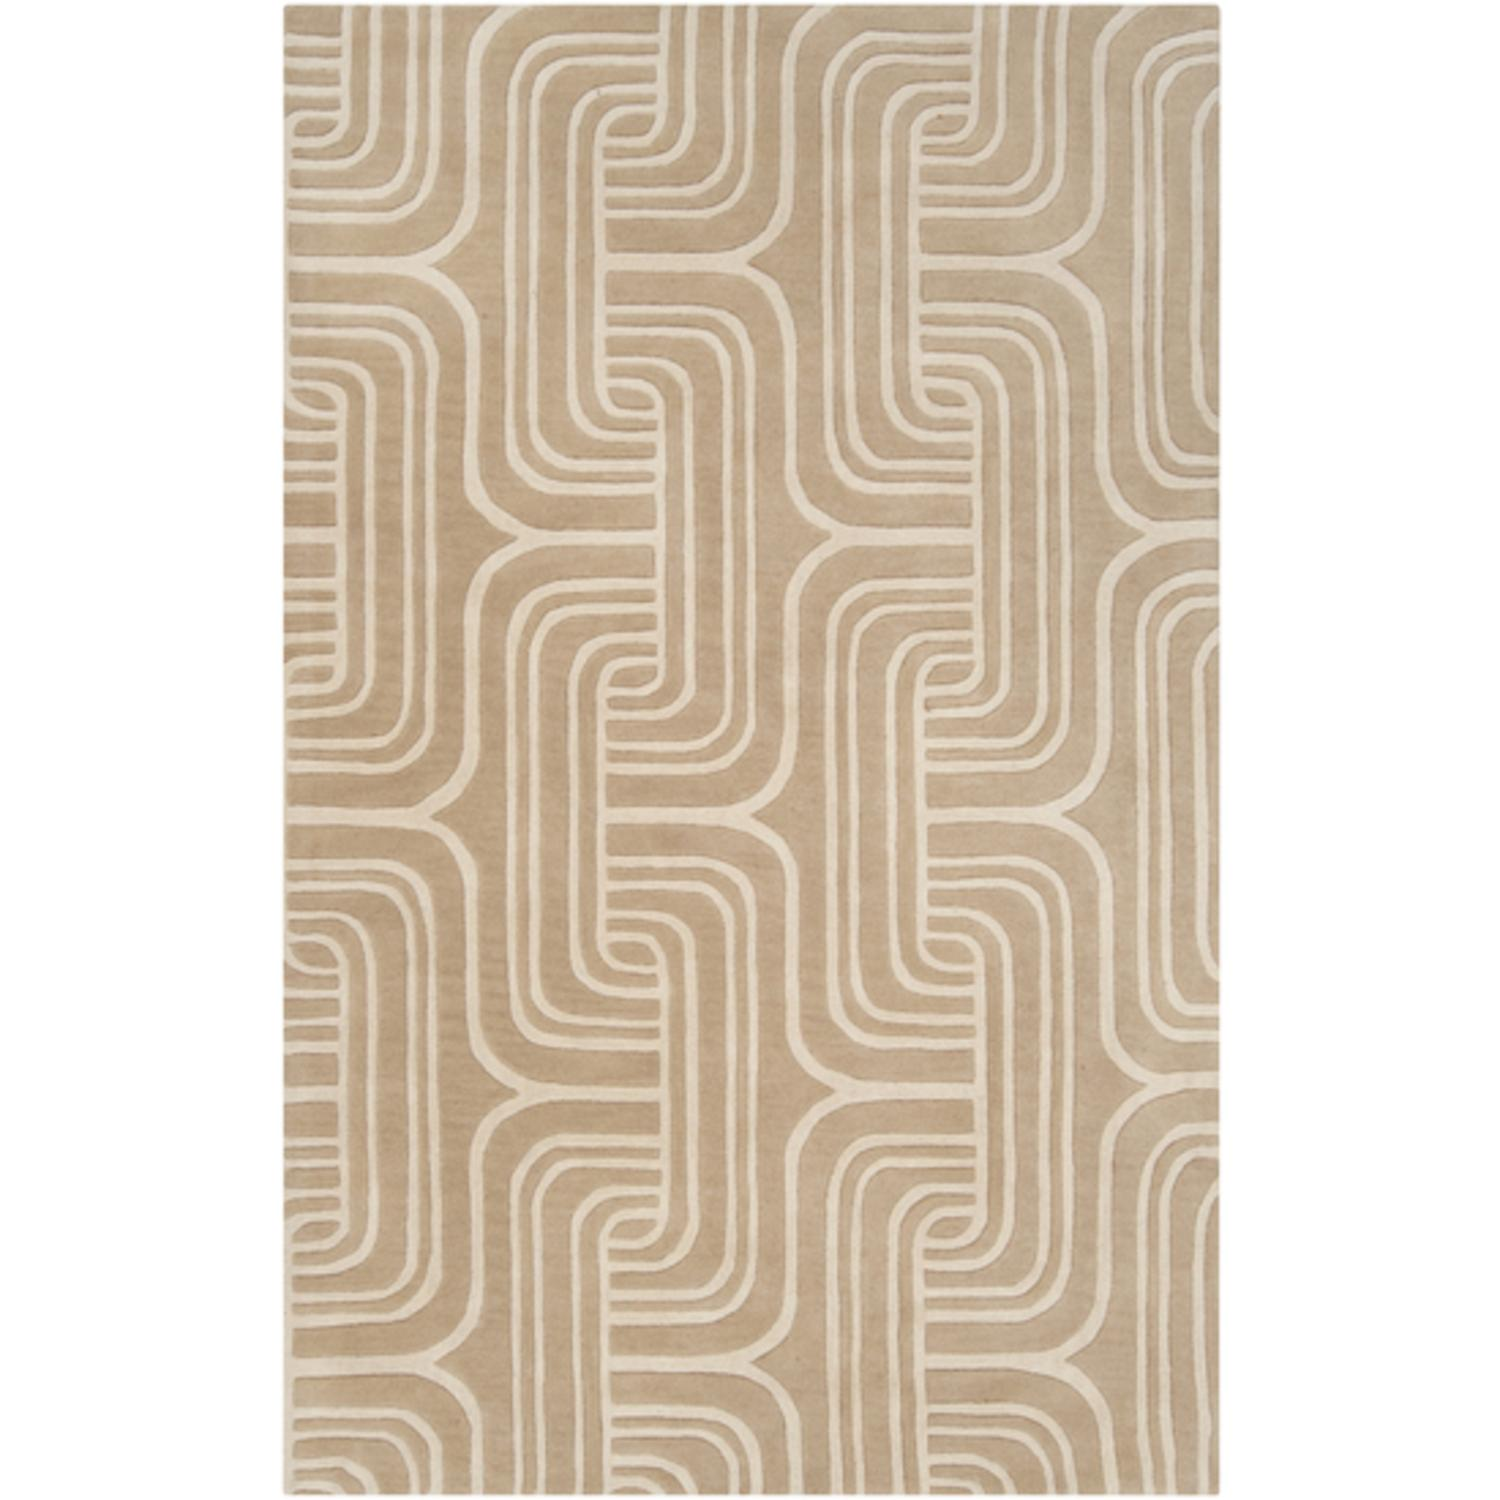 2' x 3' Oatmeal Dune Parchment and Desert Sand Wool Area Throw Rug